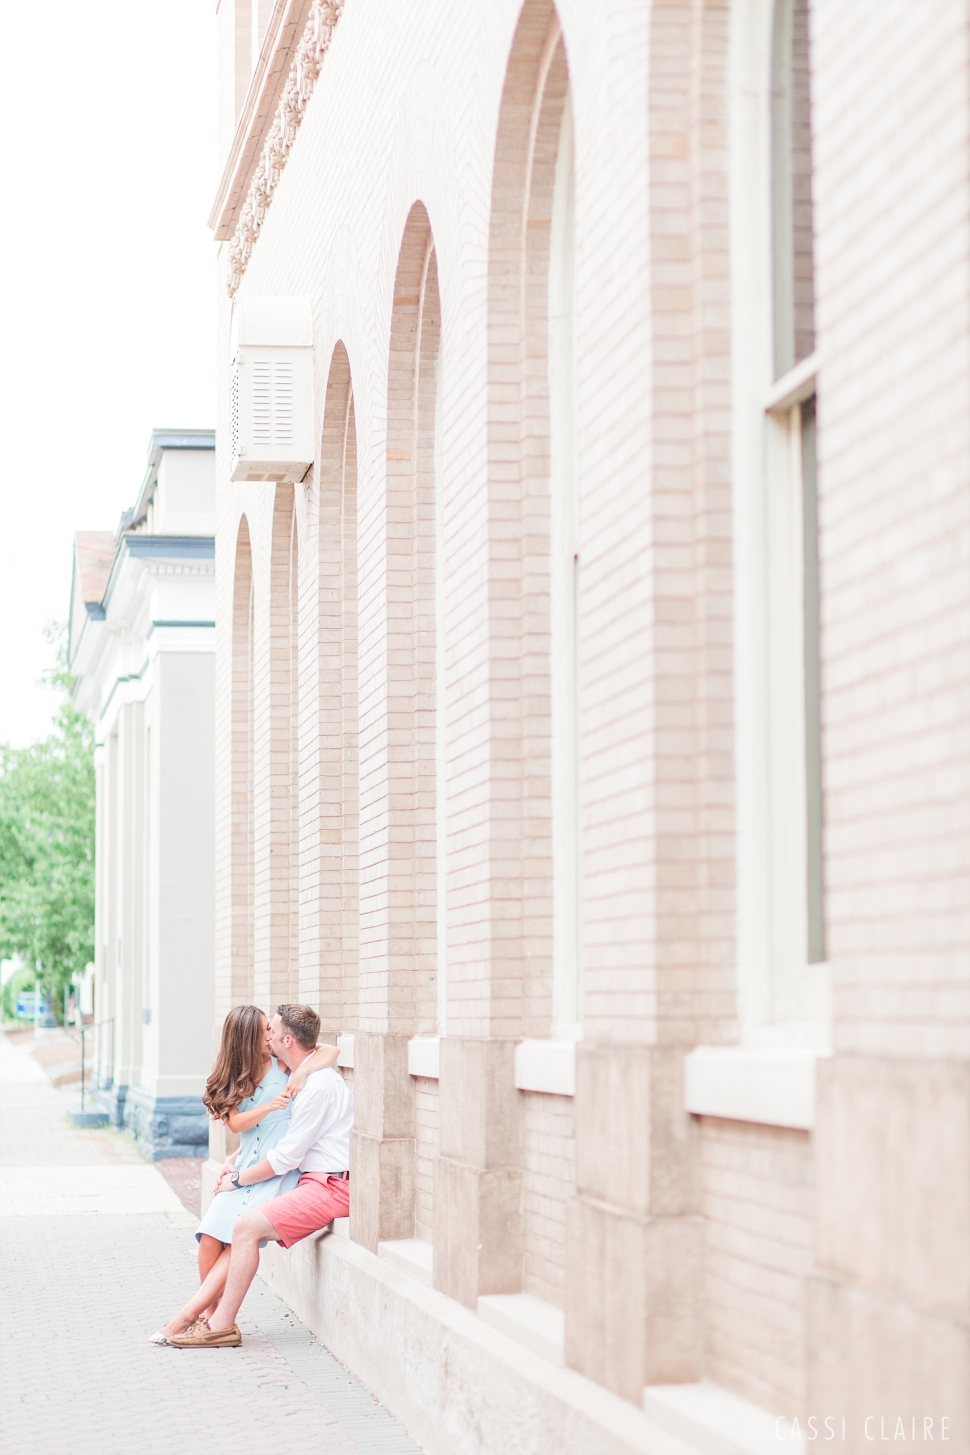 Somerville-NJ-Engagement-Photos-CassiClaire_14.jpg